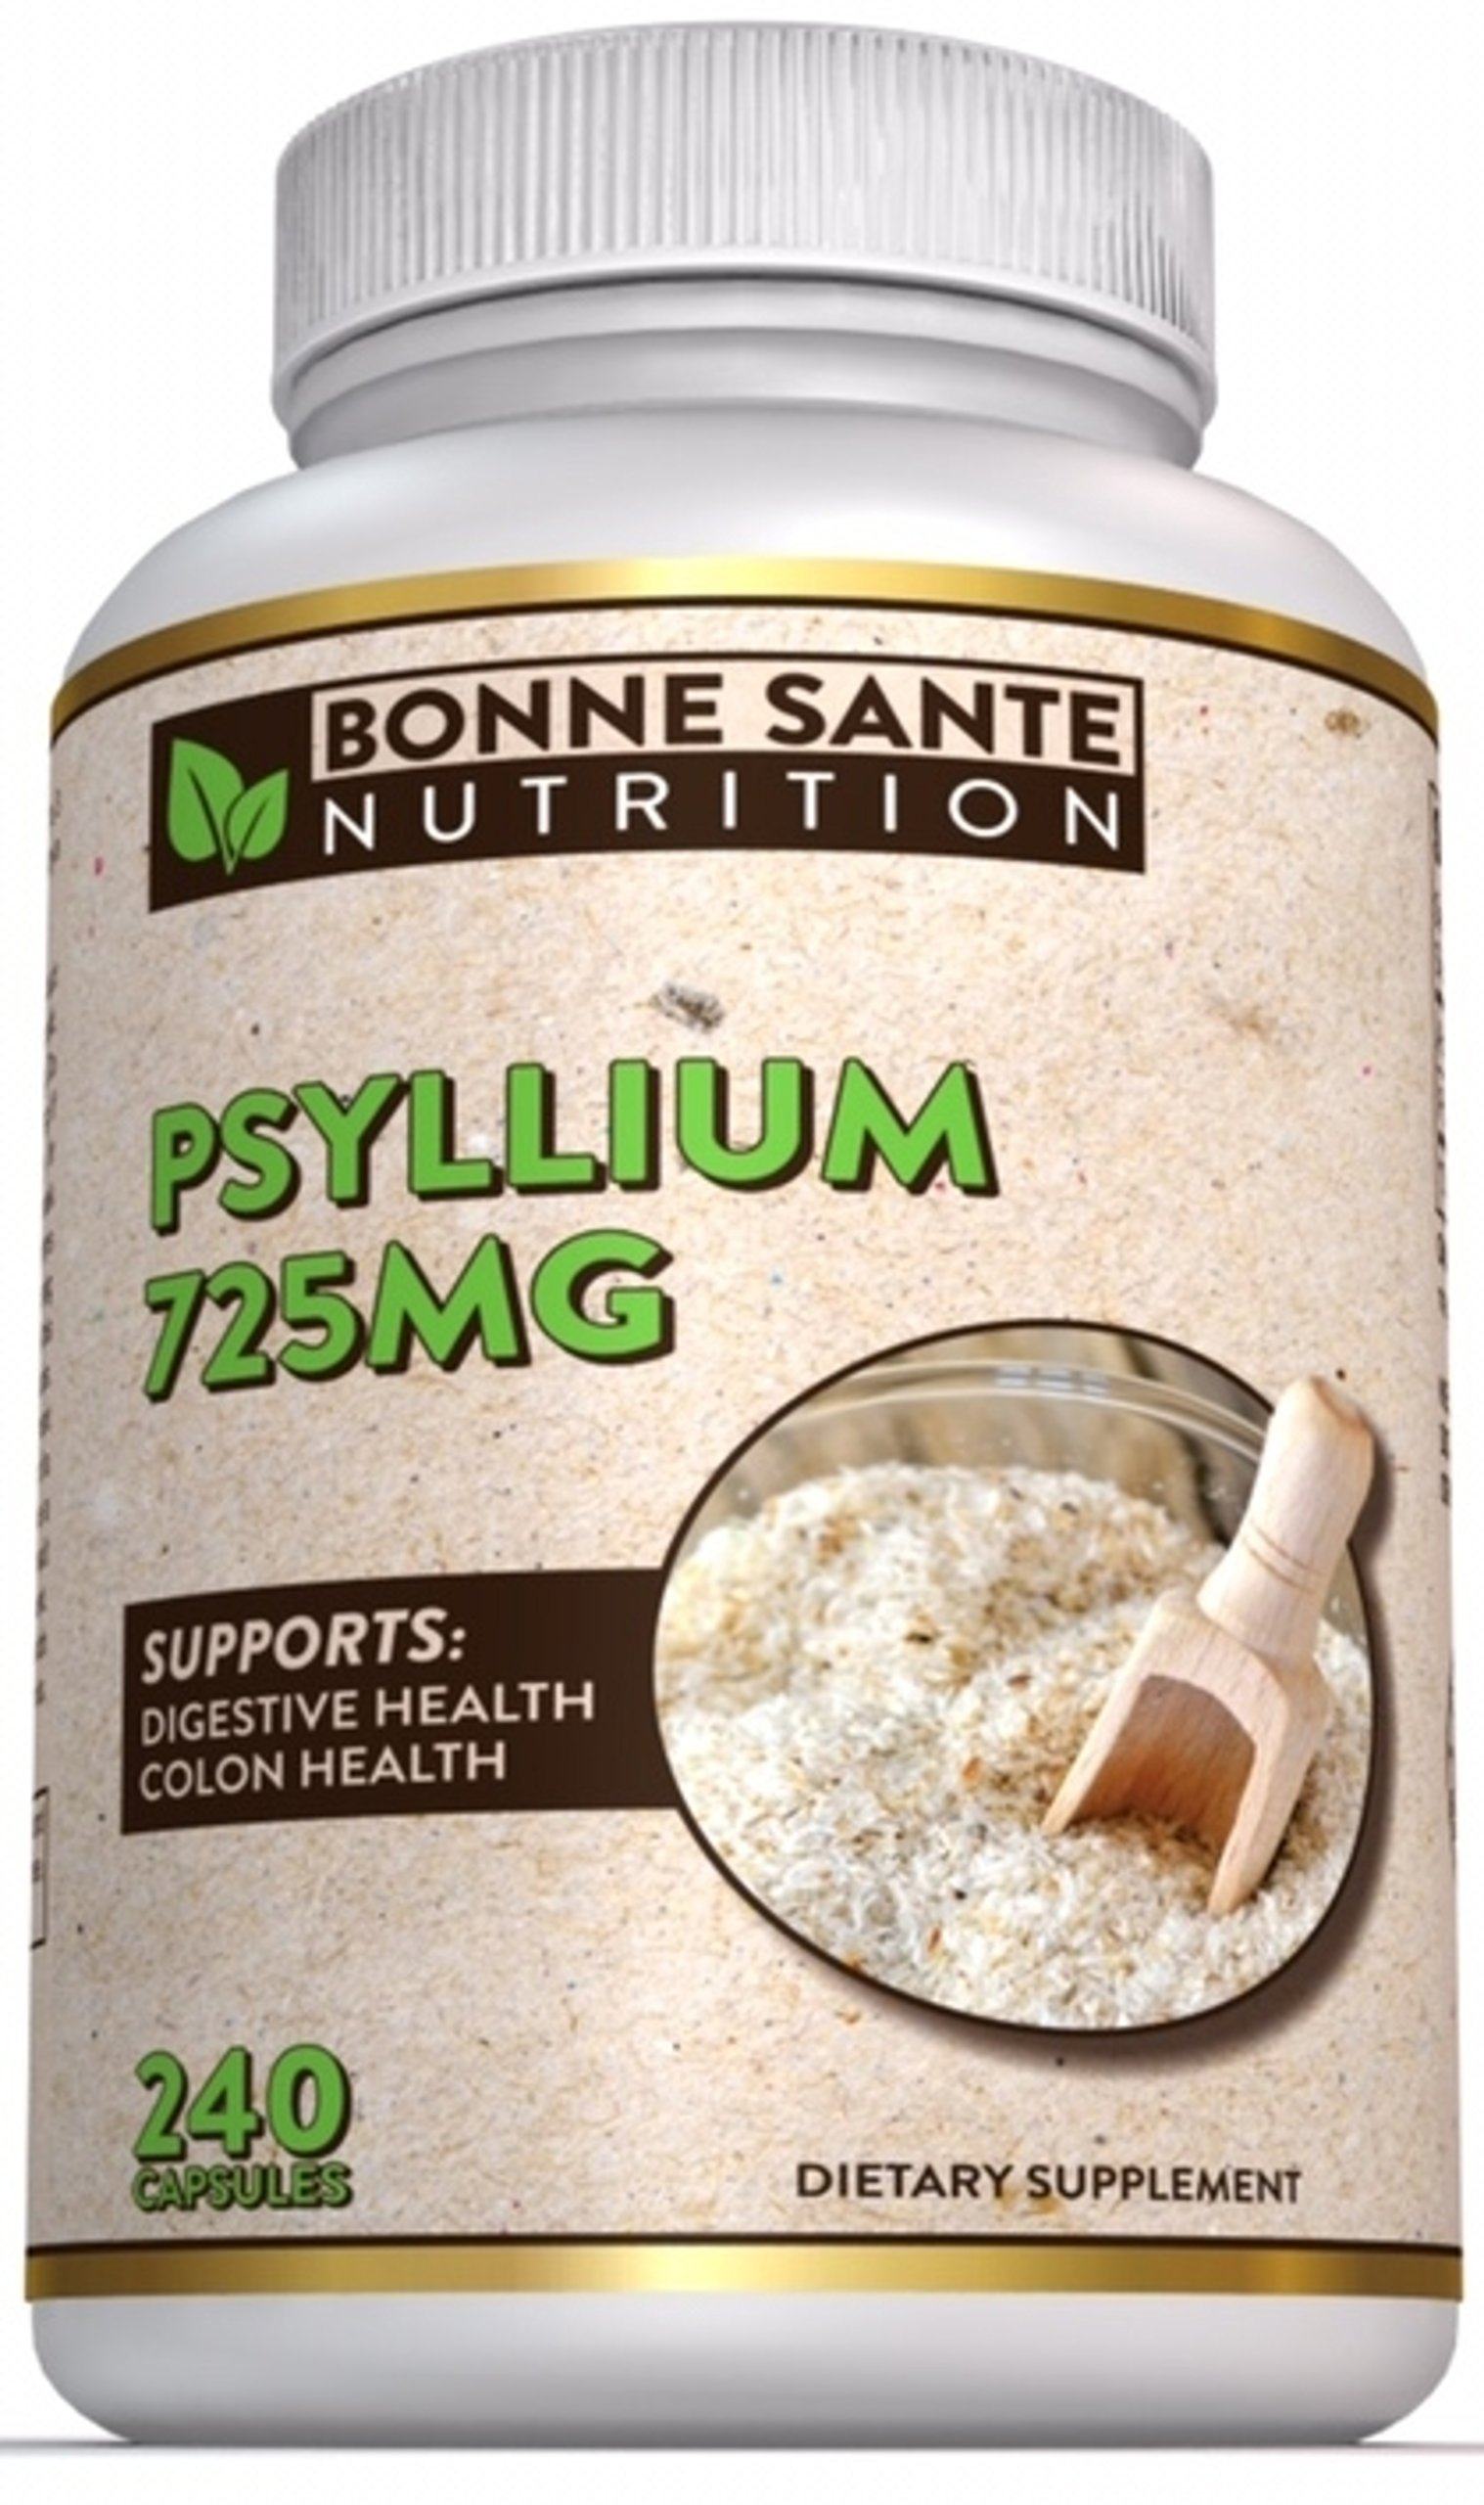 Psyllium Husk by Bonne Sante Nutrition, 240 Psyllium Husk Capsules, 725 mg Per Serving, Supports Healthy Digestive System, All Natural, 100% Soluble Fiber by Bonne Sante Nutrition